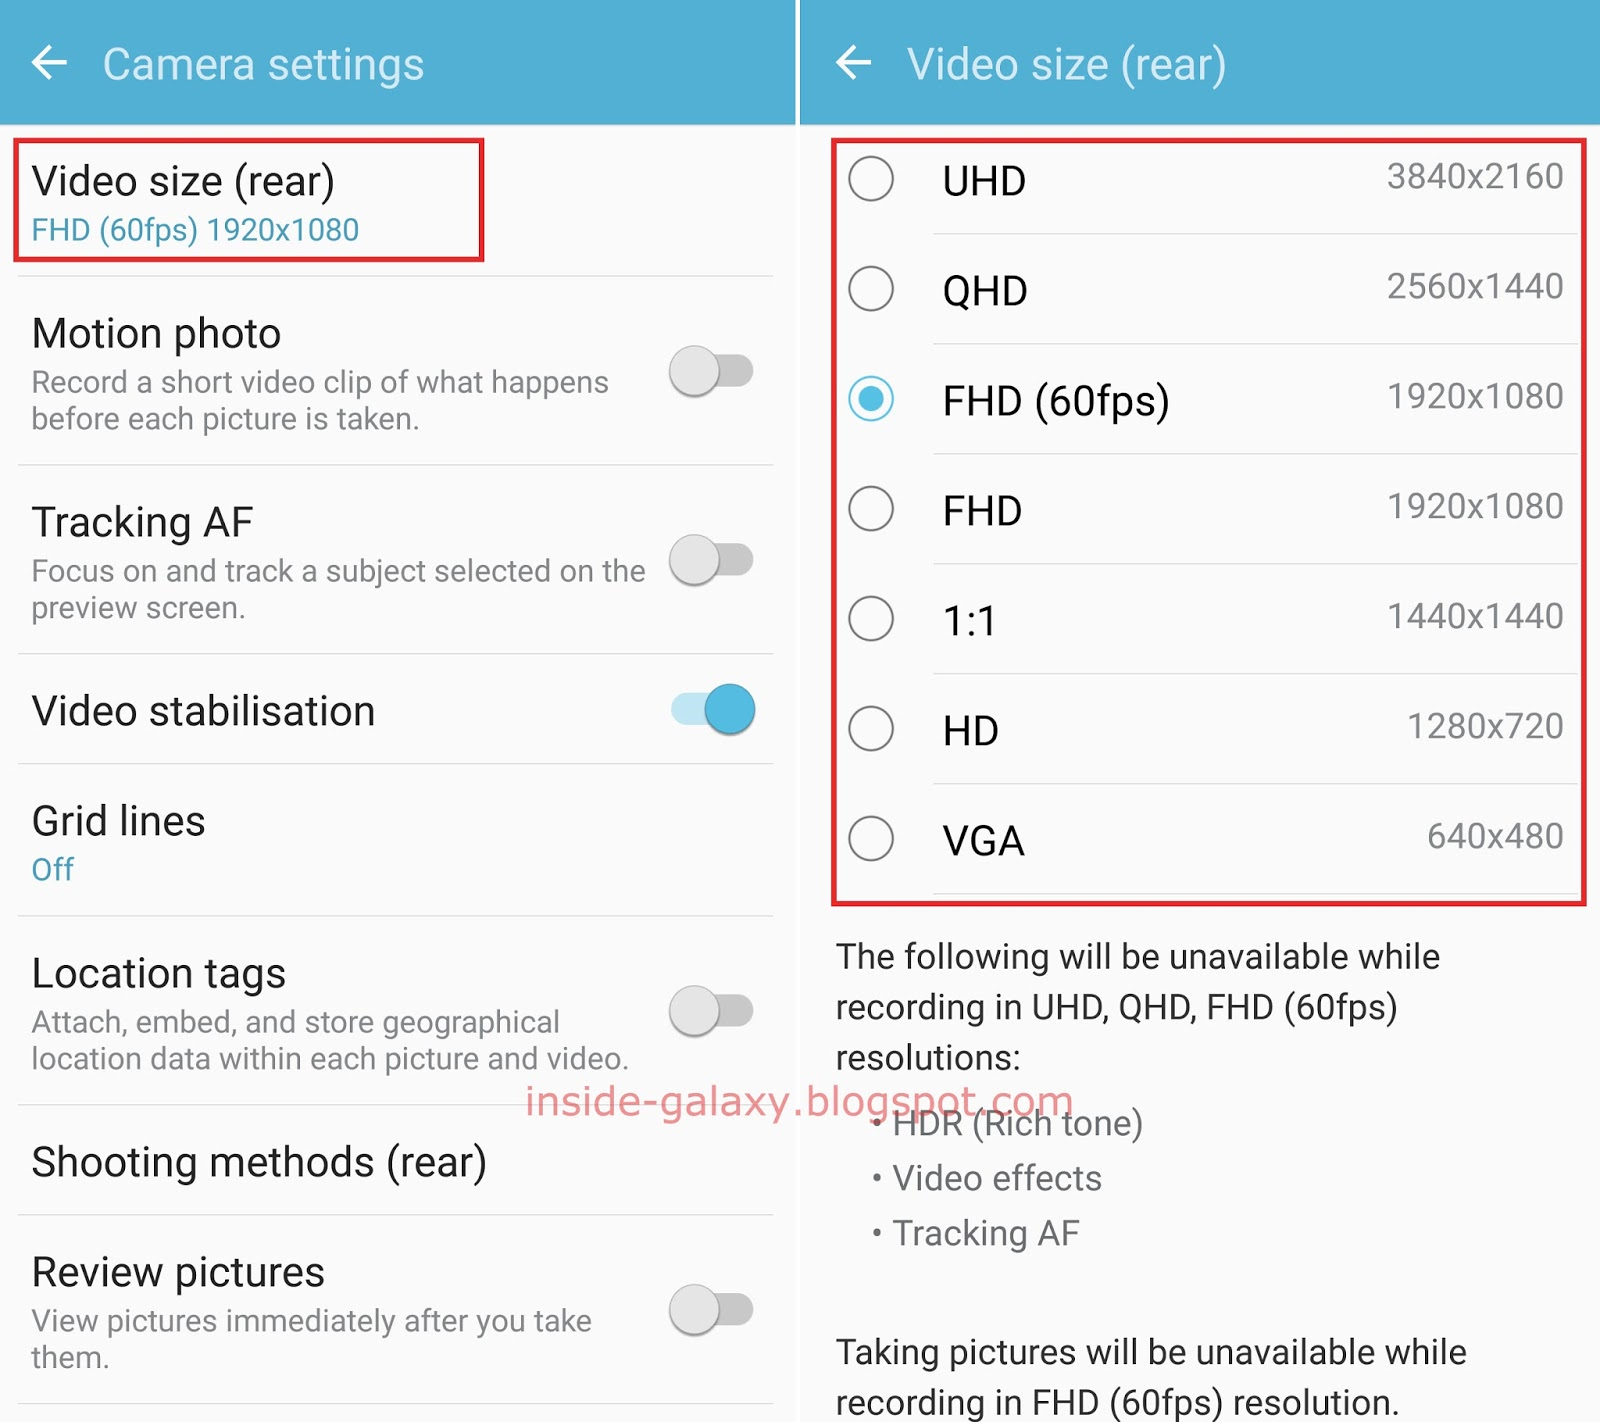 Samsung Galaxy S7 Edge: How to Change Video Size in Camera